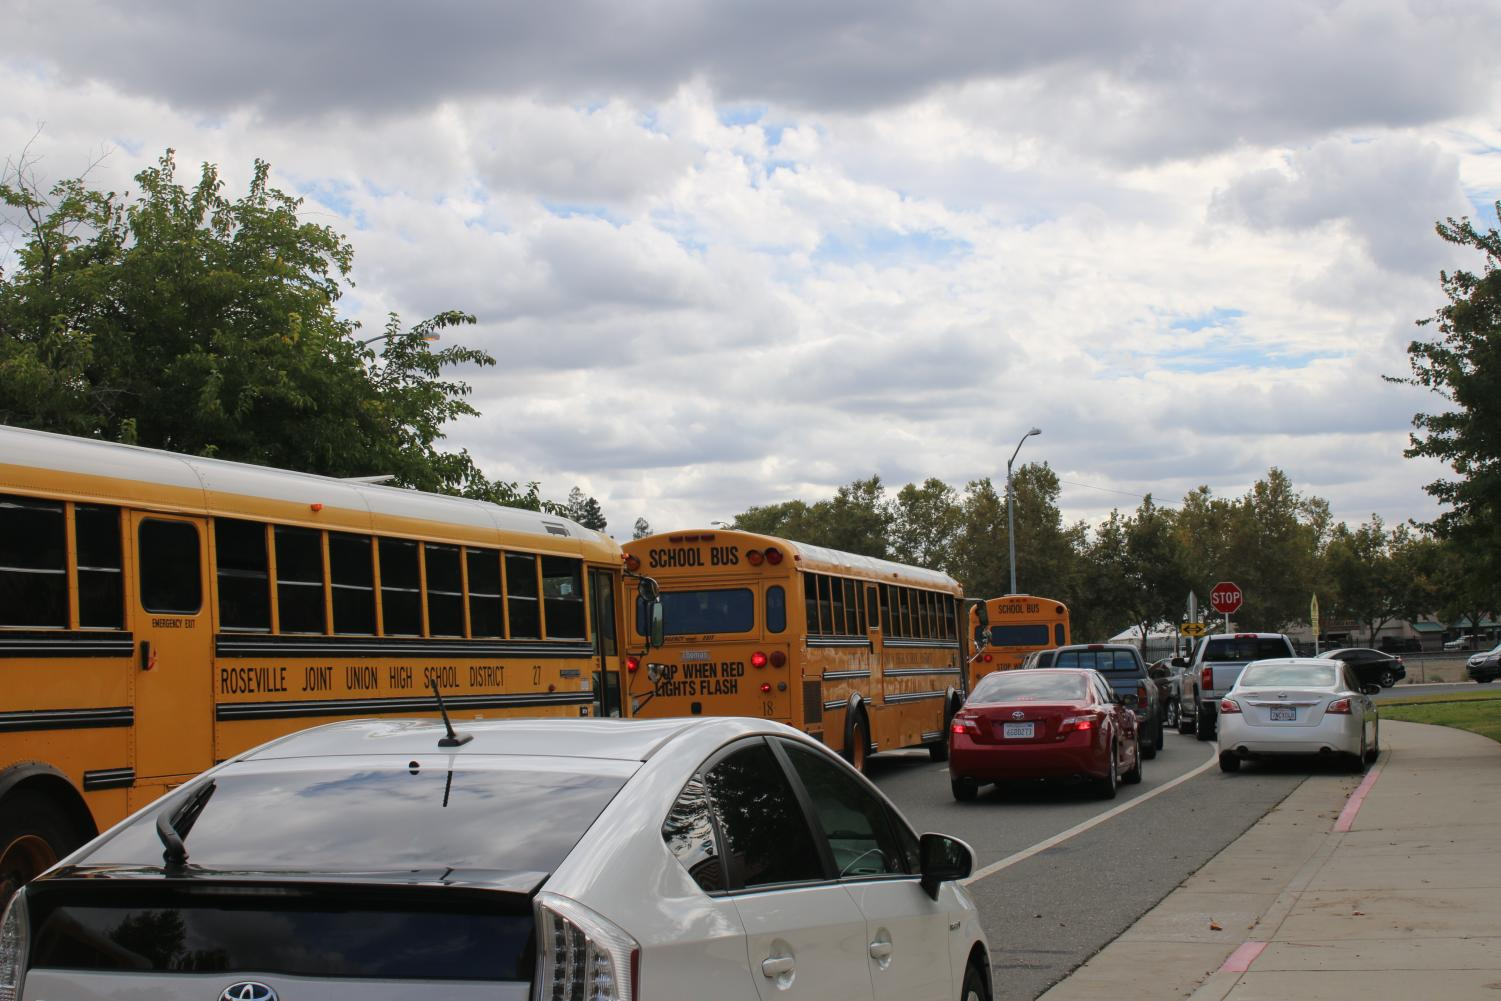 Transportation difficulties impede student arrival